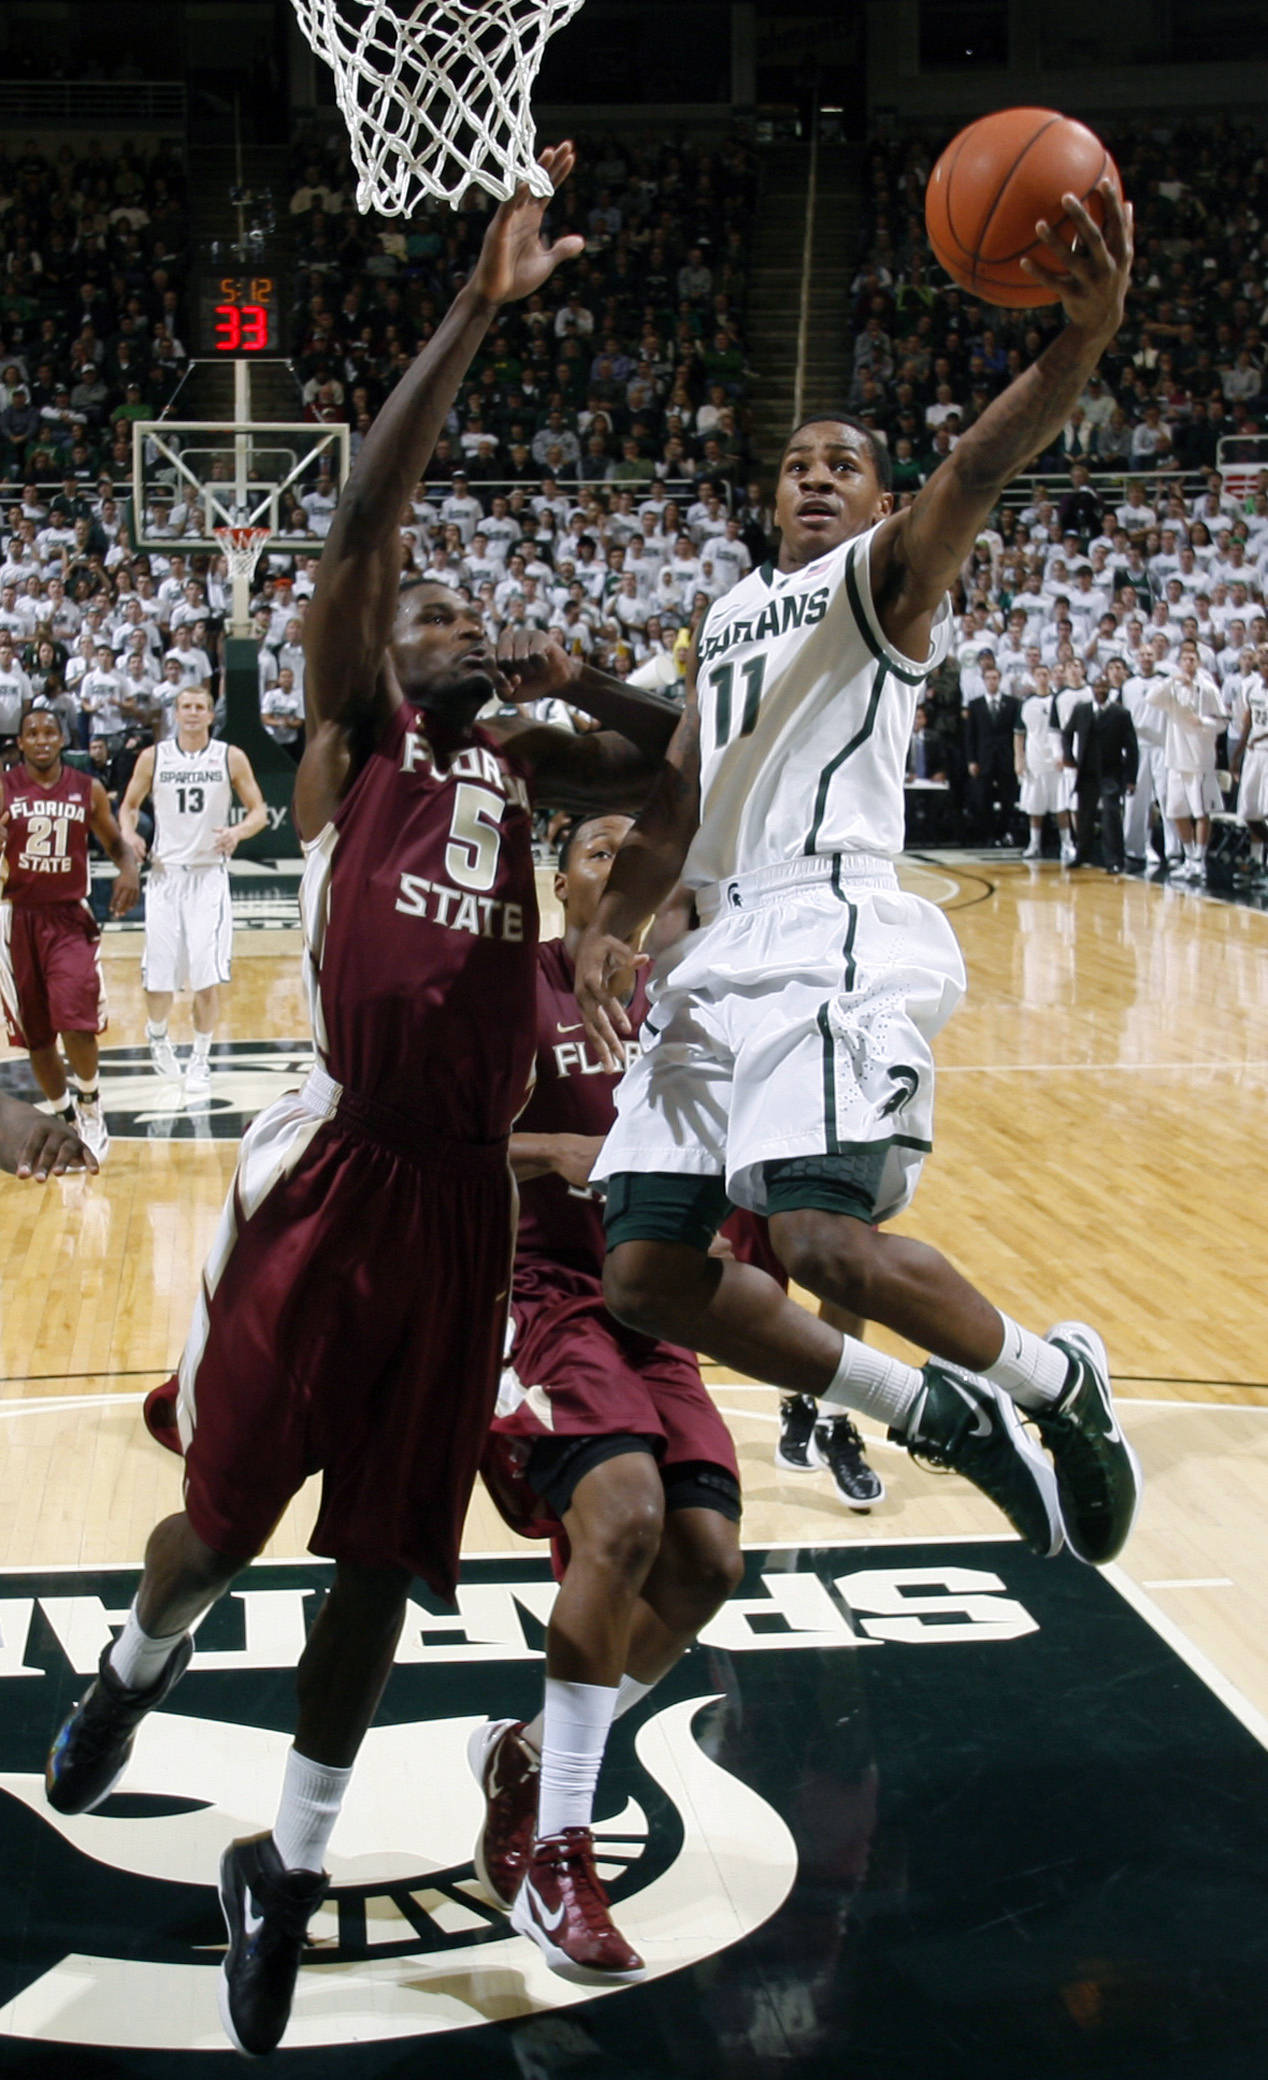 Michigan State's Keith Appling puts up a layup against Florida State's Bernard James during the first half. (AP Photo/Al Goldis)